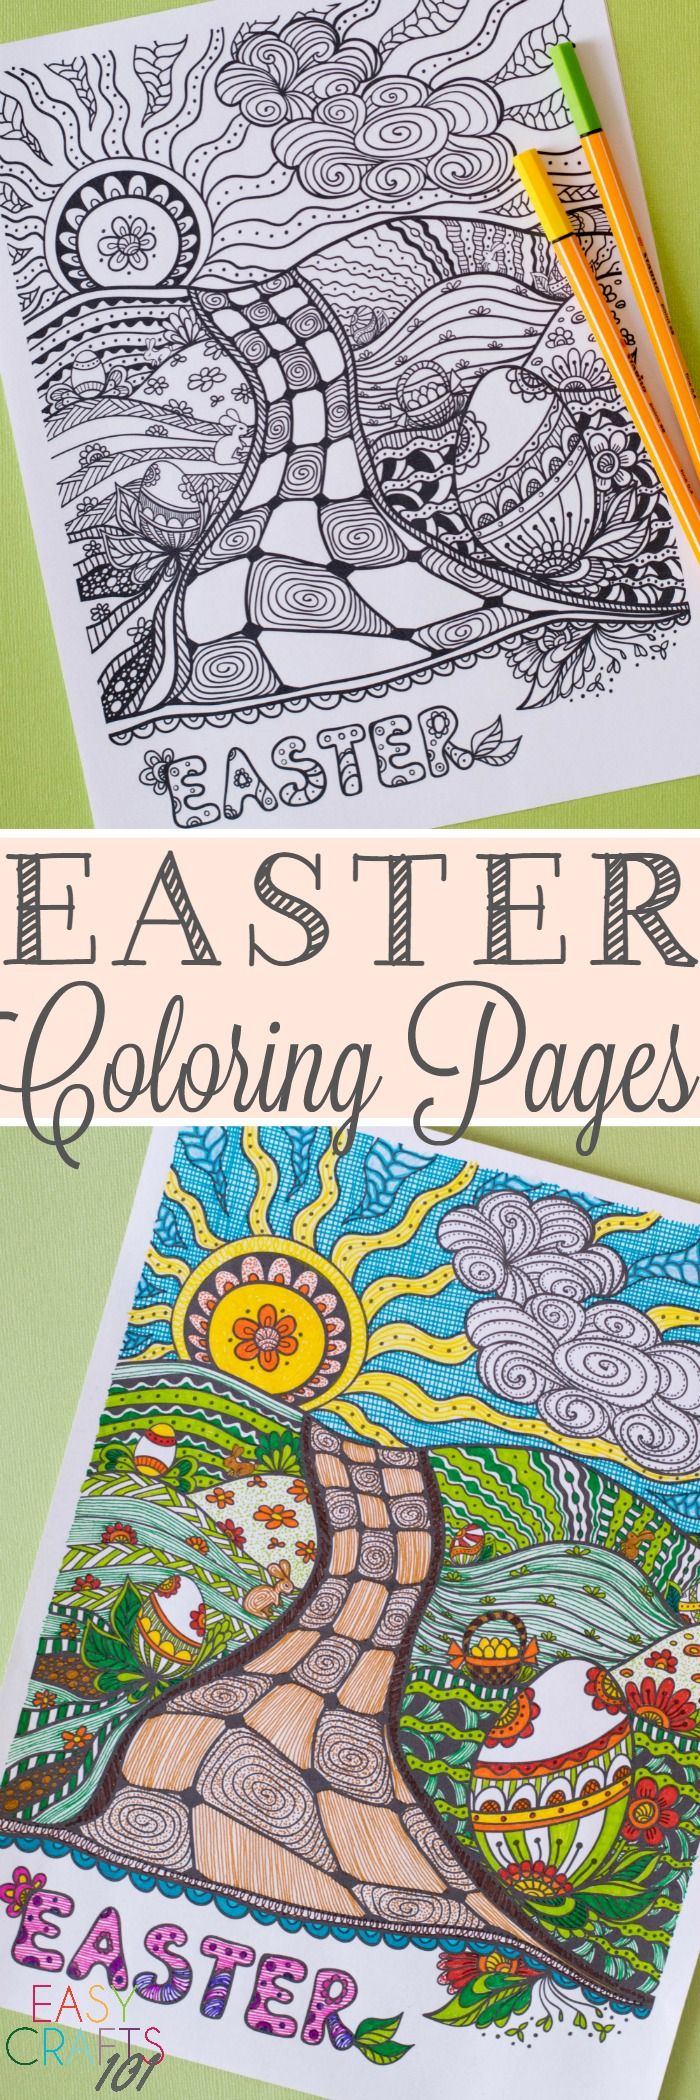 Coloring pages for down syndrome adults - Free Easter Coloring Pages